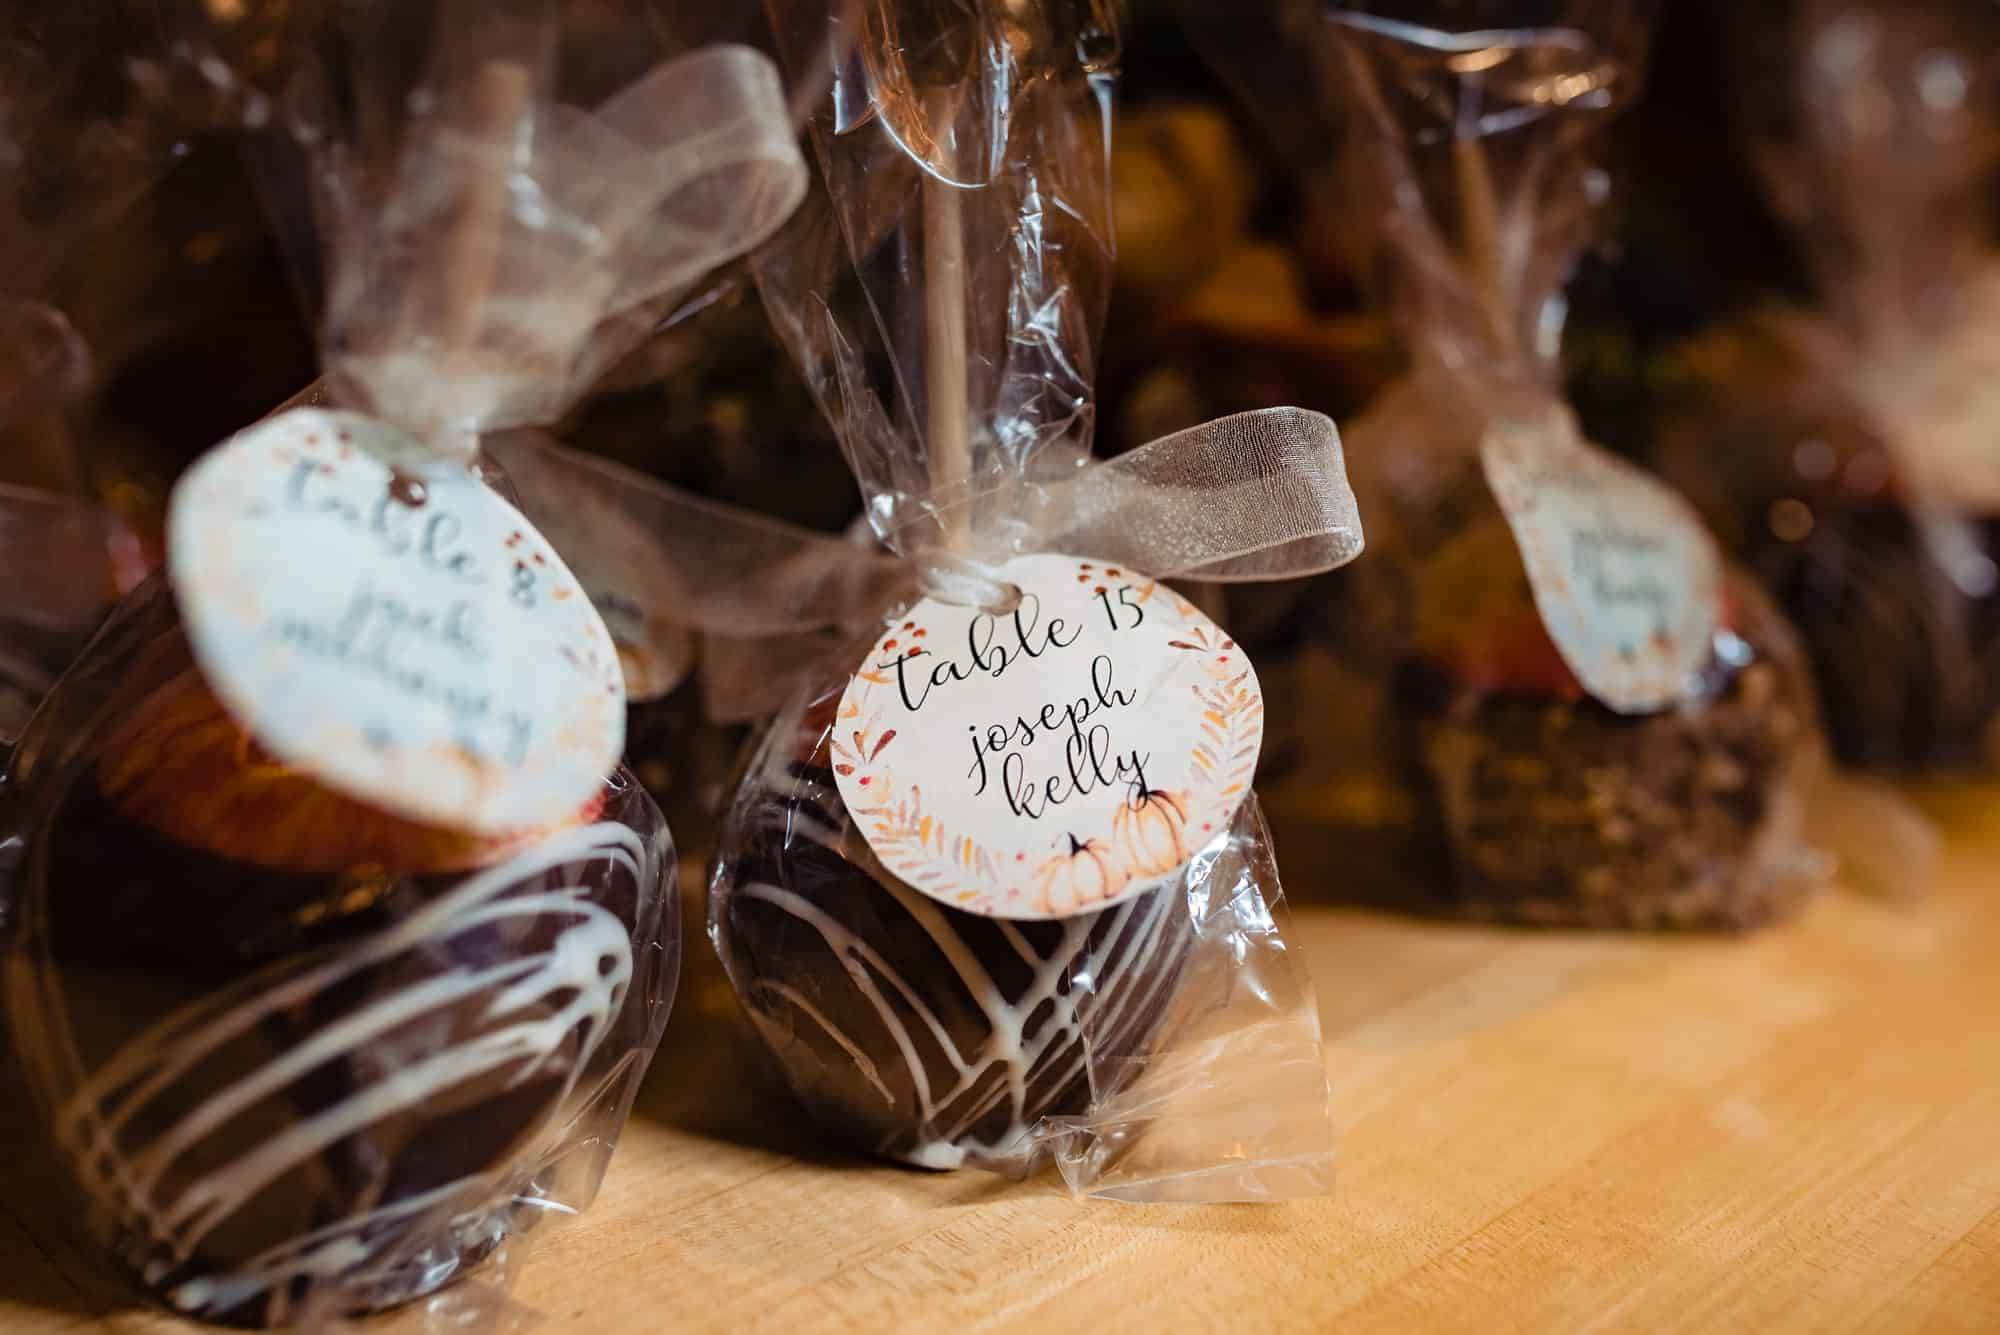 Caramel apple wedding favors with a bow wrapped around them